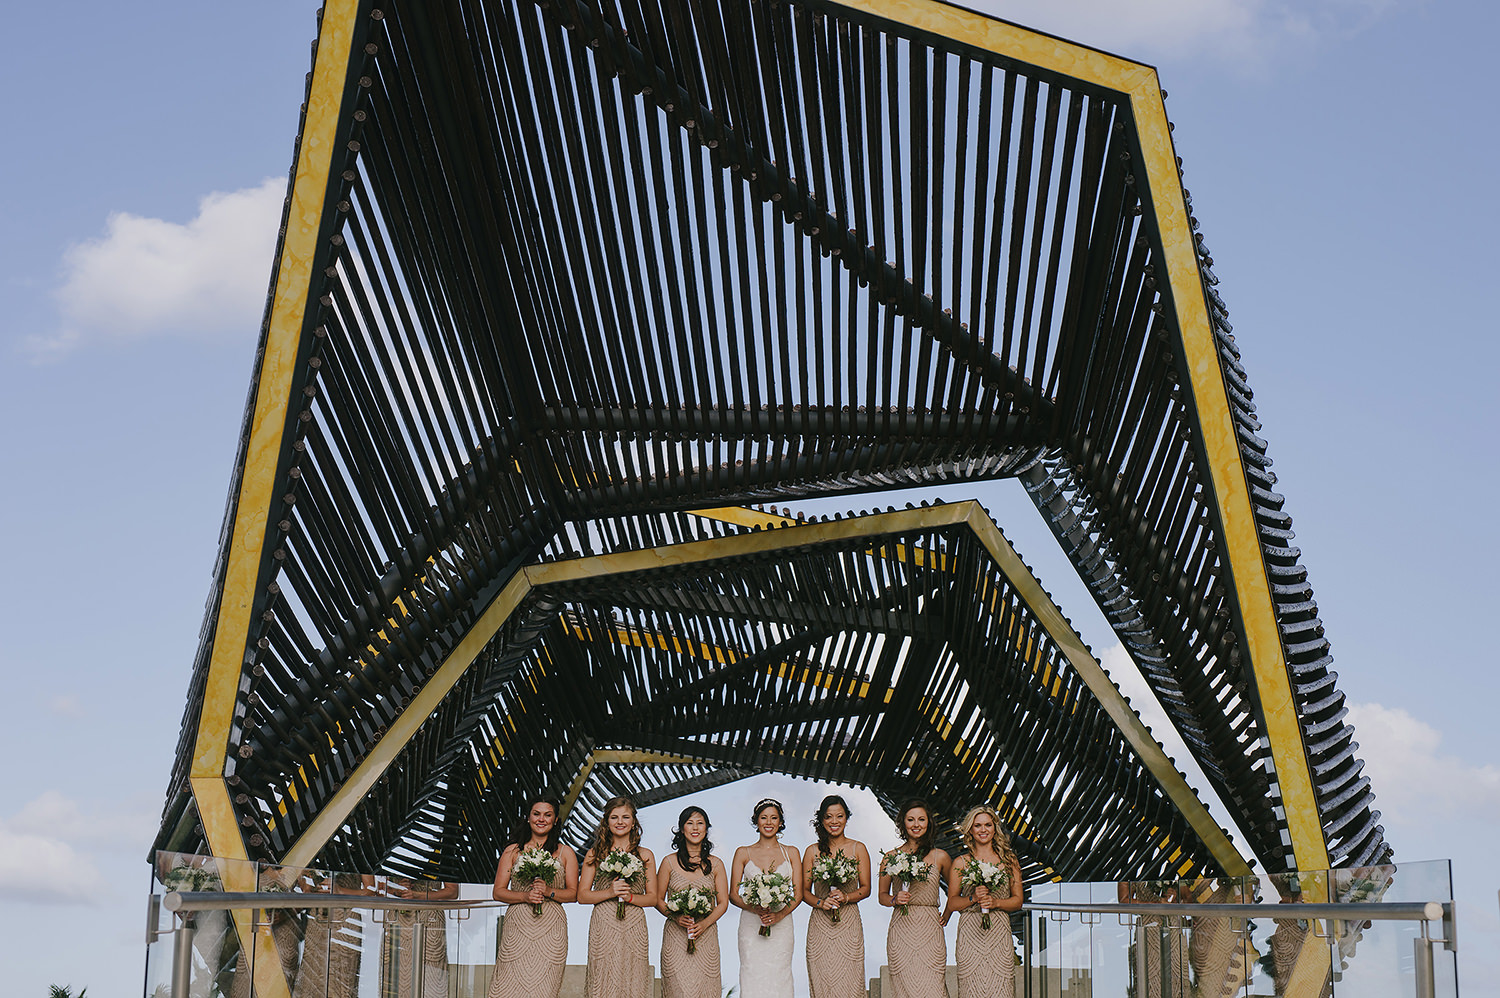 CherylReed_Wedding_Kape_Photography_WeddingPhotography_Mexico_Boda_Fotografia_Royalton_Hideway_Cancun_RivieraMaya_PlayadelCarmen_Beach_365FB_BLOG.jpg